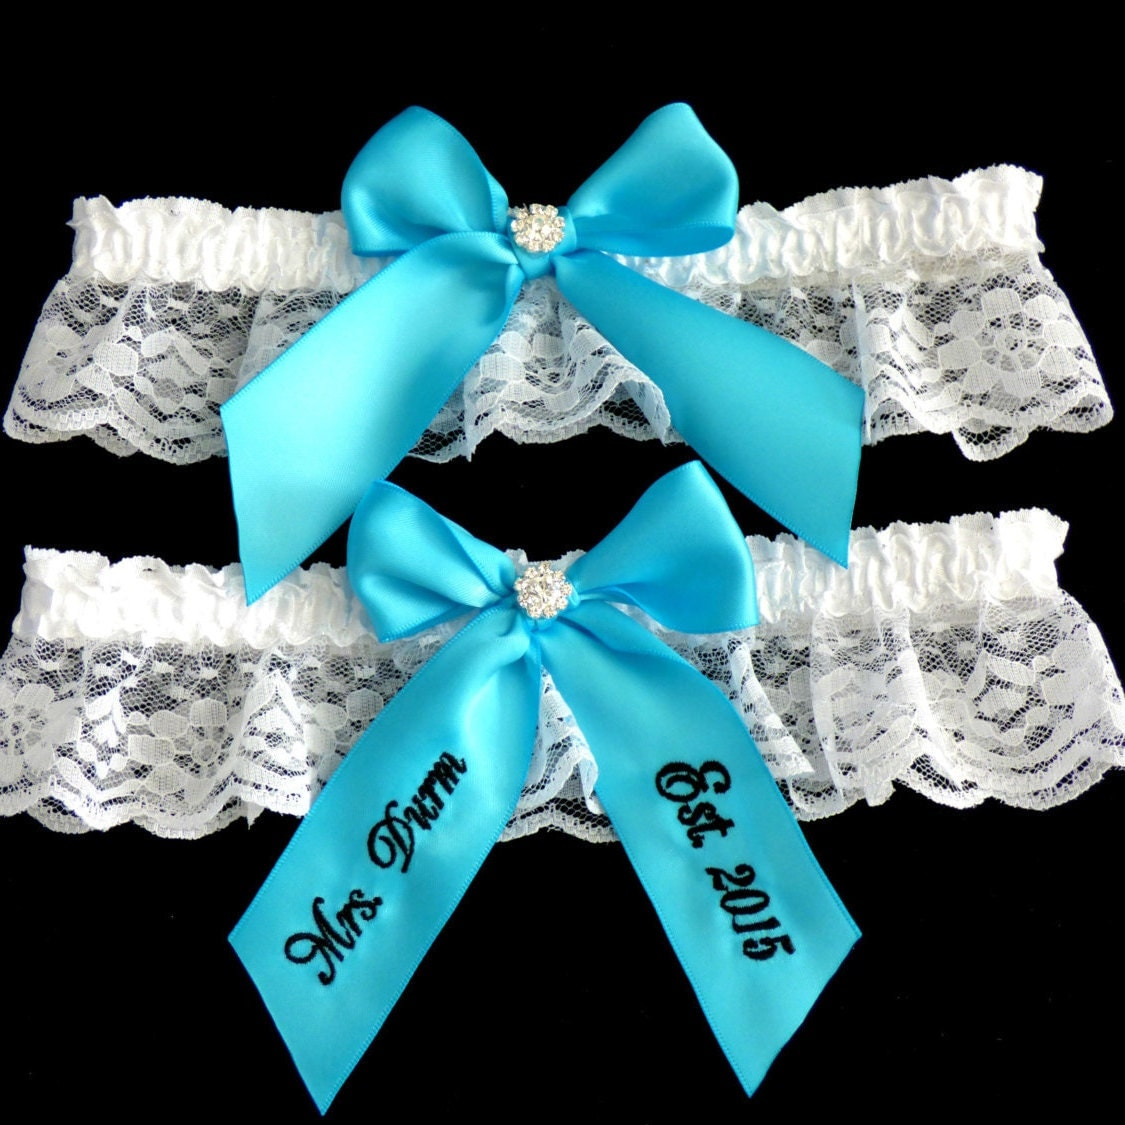 Personalized Turquoise Bridal Garter Wedding Garter